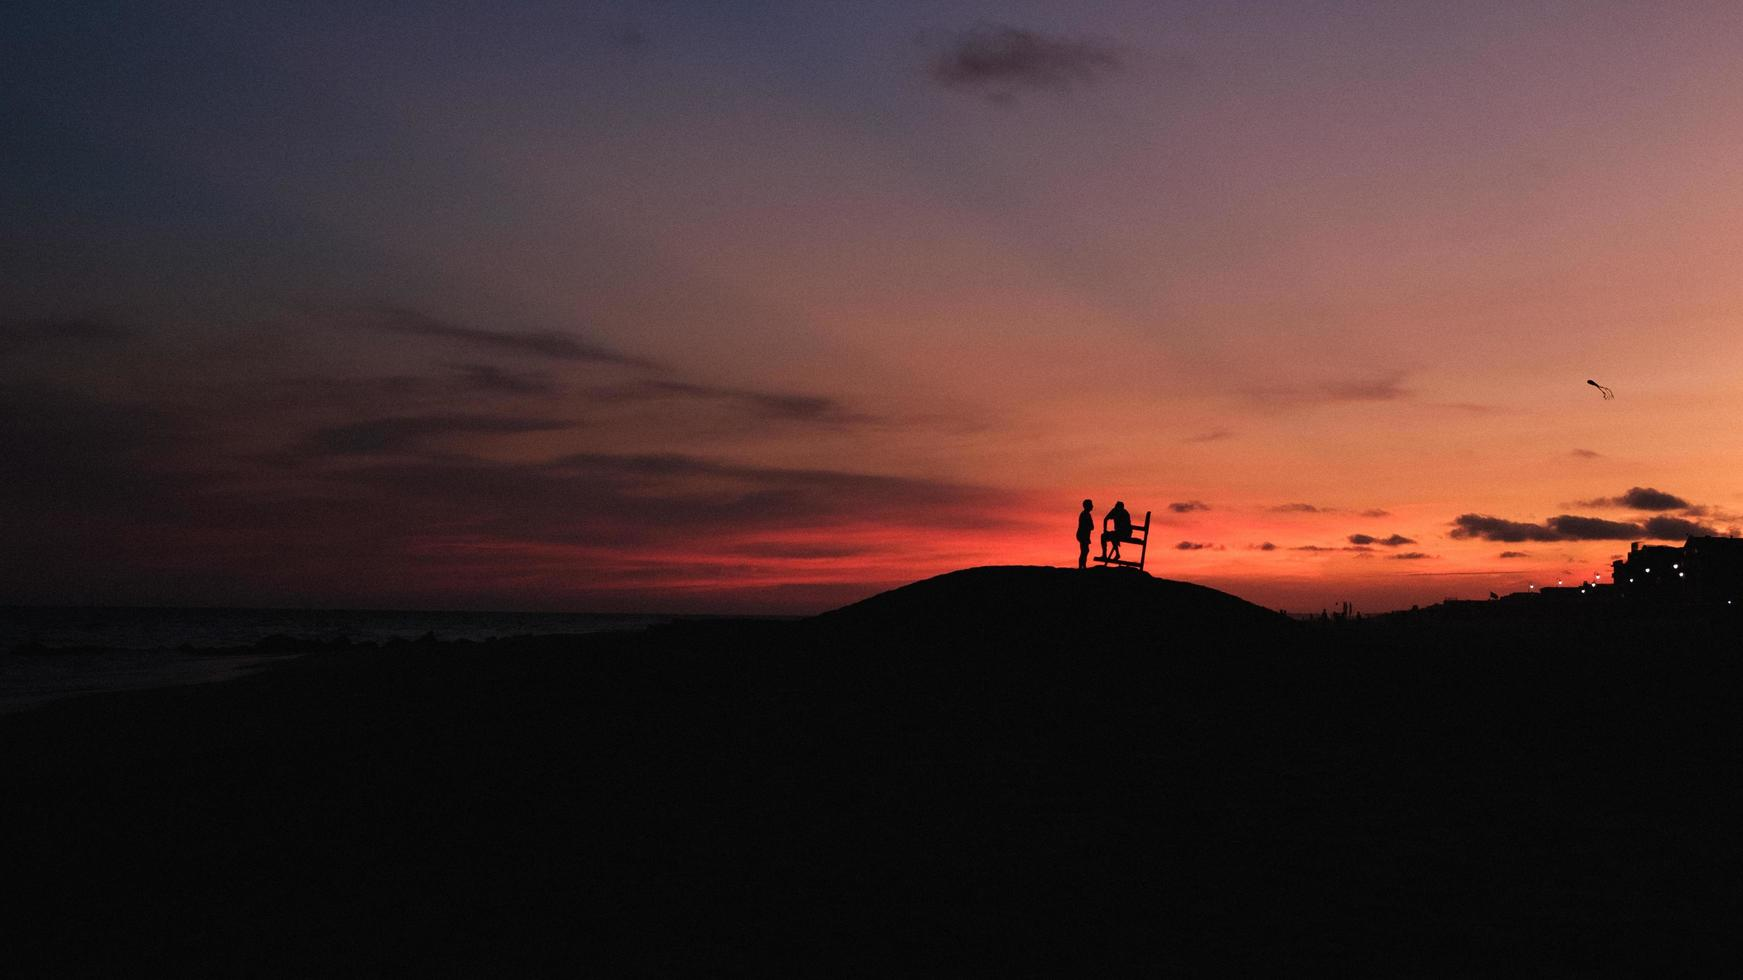 Silhouette of 2 people standing on hill during sunset photo